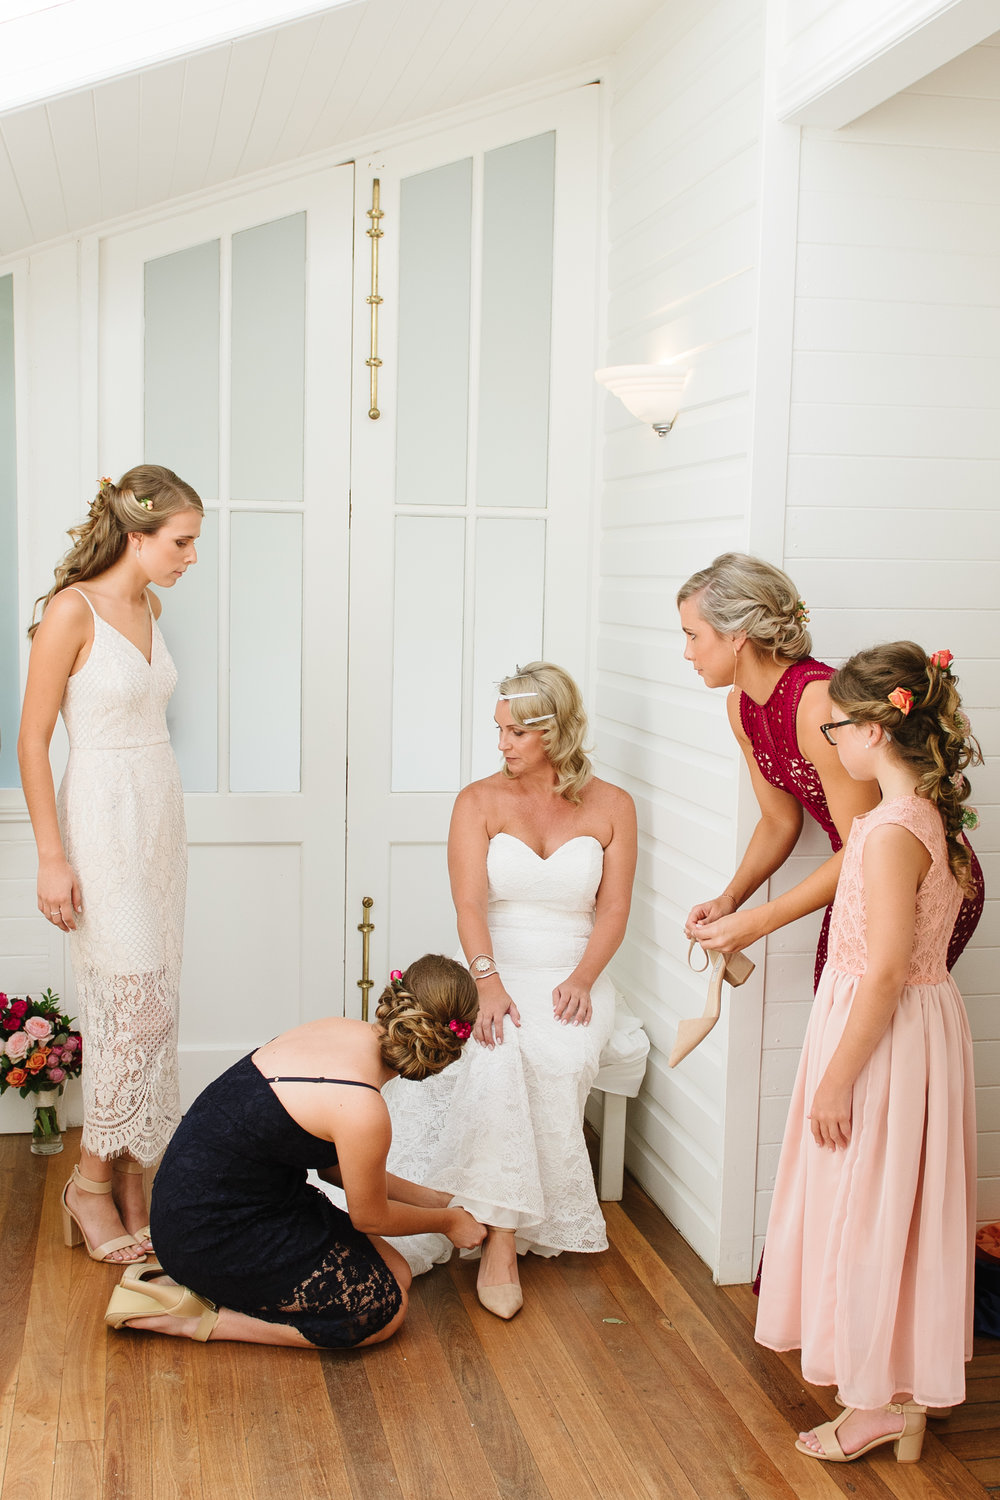 Renee and Matt- wedding photographer, byron bay wedding and family photographer, tweed heads wedding and family photography-150.jpg